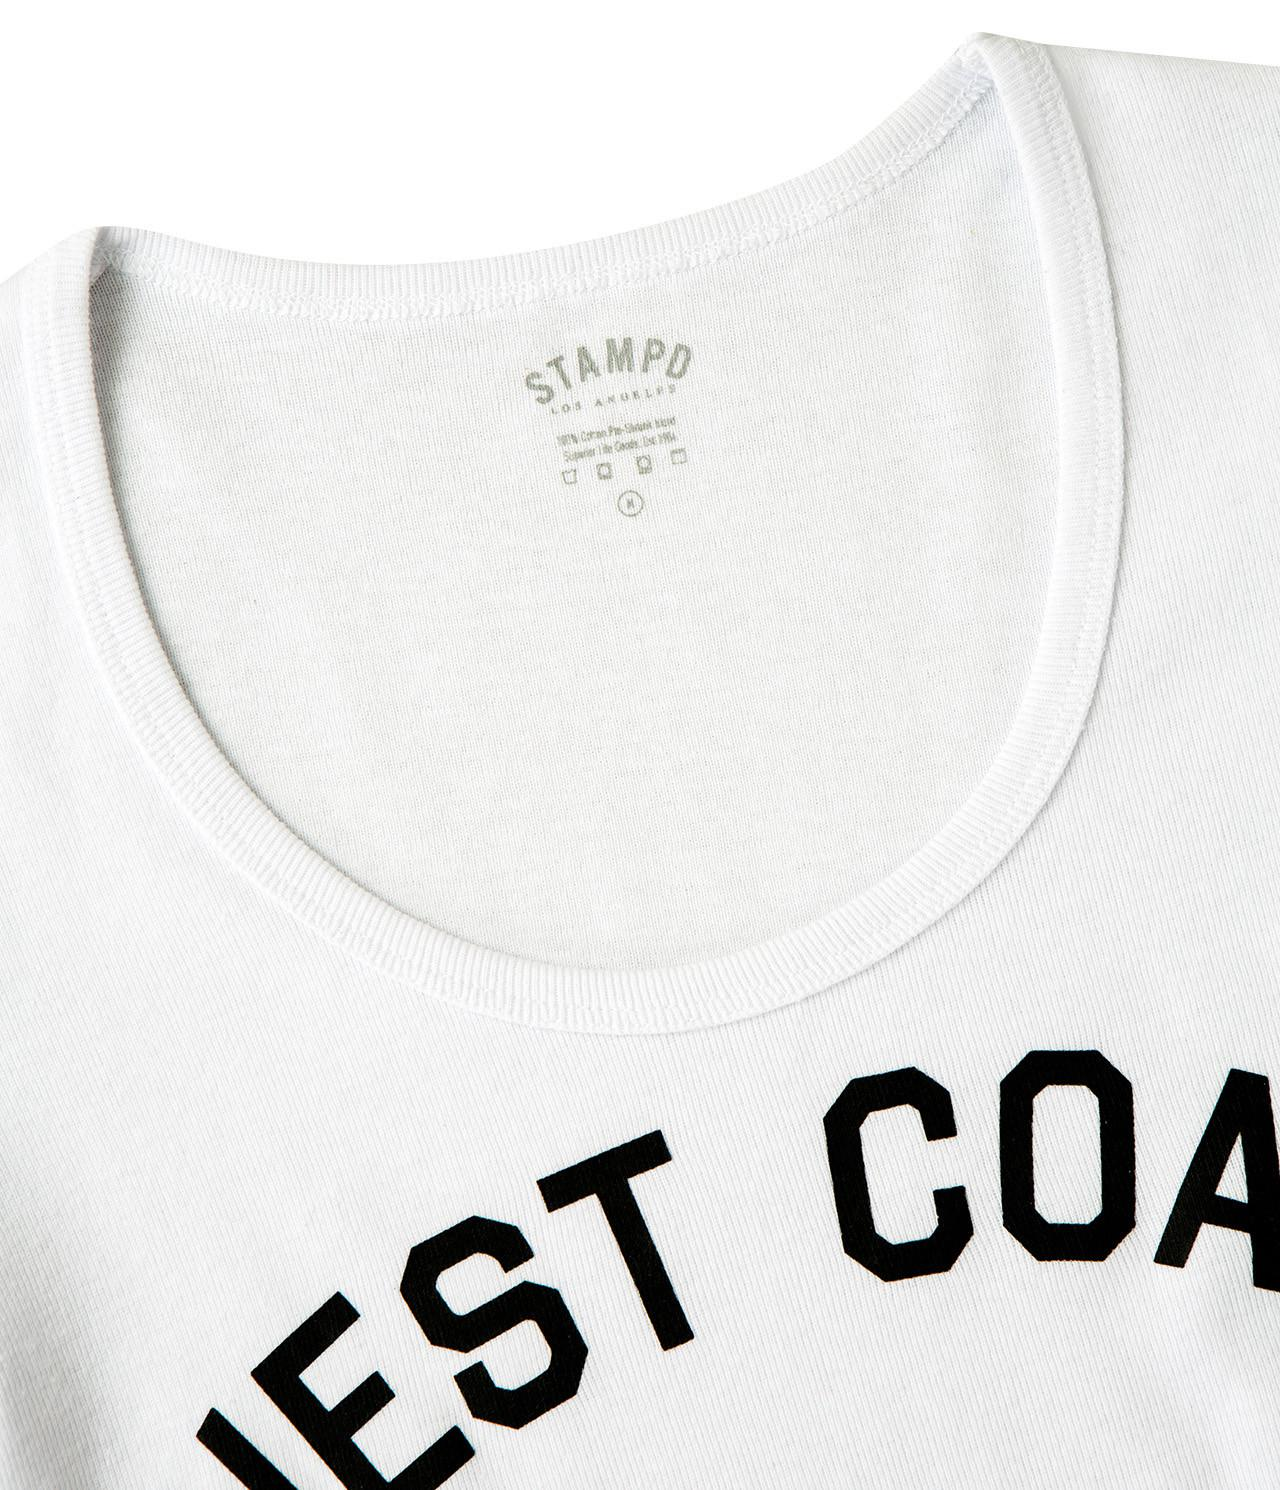 7dfacf2088cdf Stampd West Coast Crop Top in White - Lyst